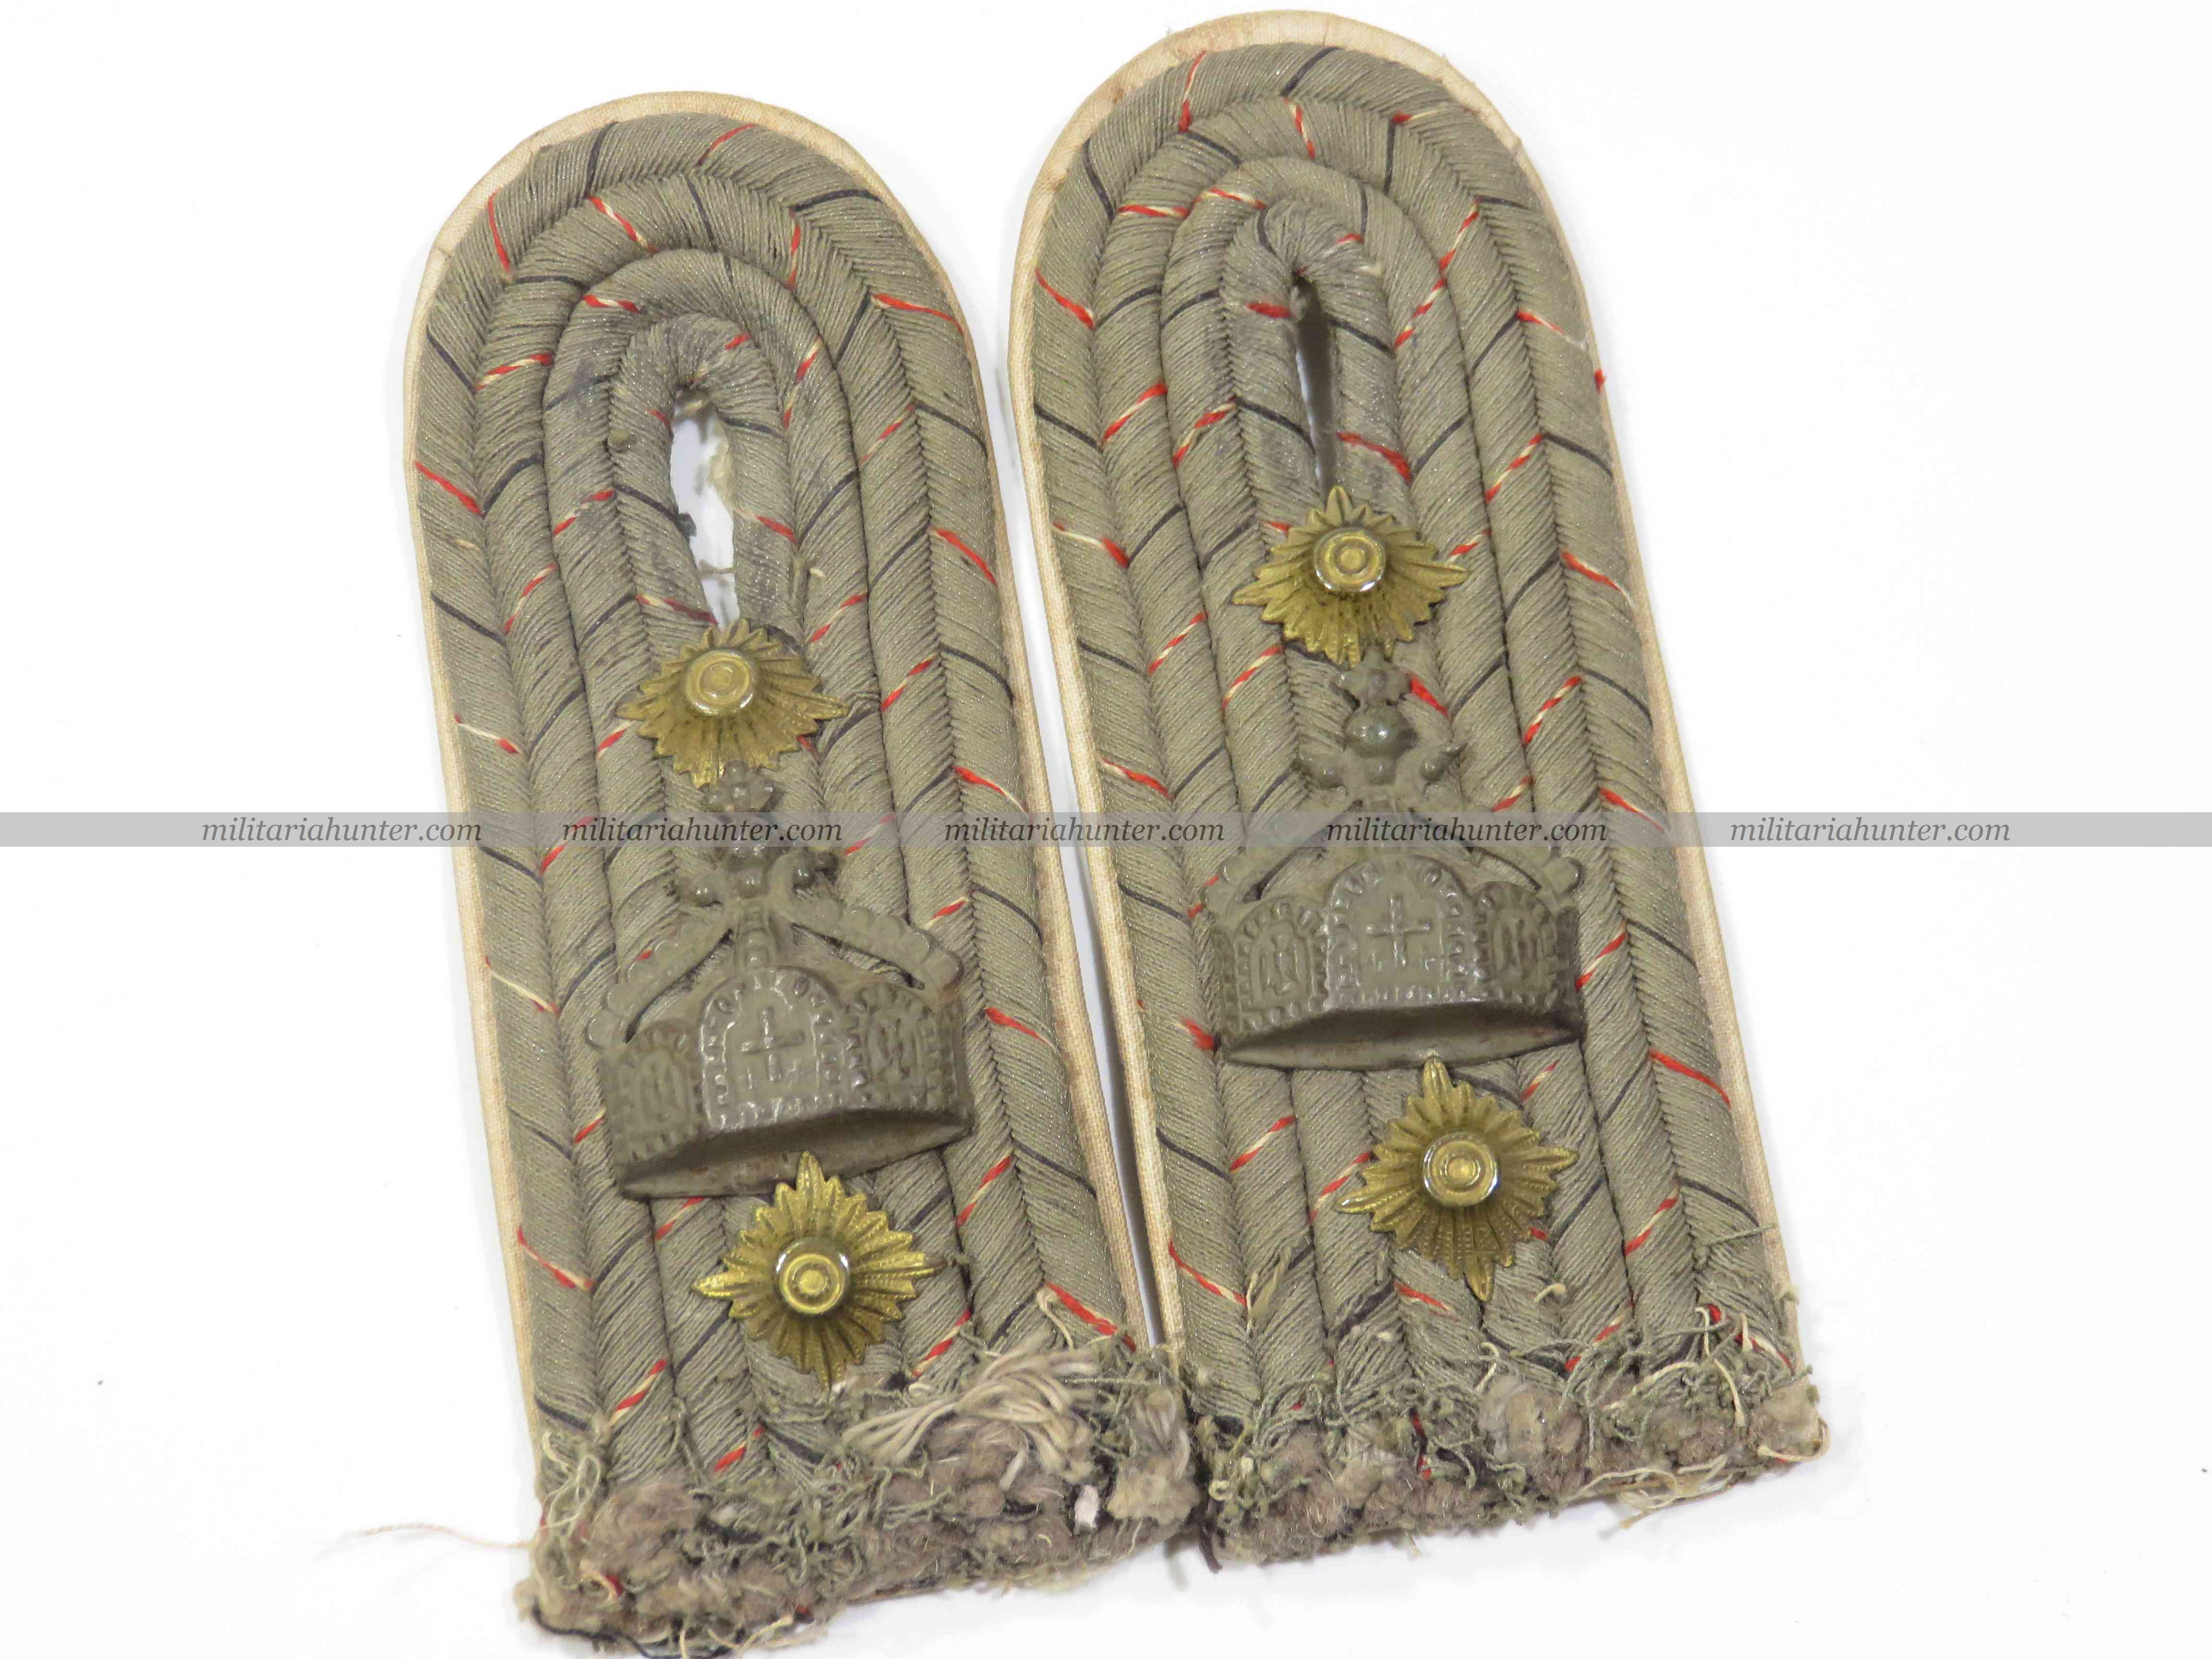 militaria : ww1 german Seebataillon Hauptmann shoulder boards